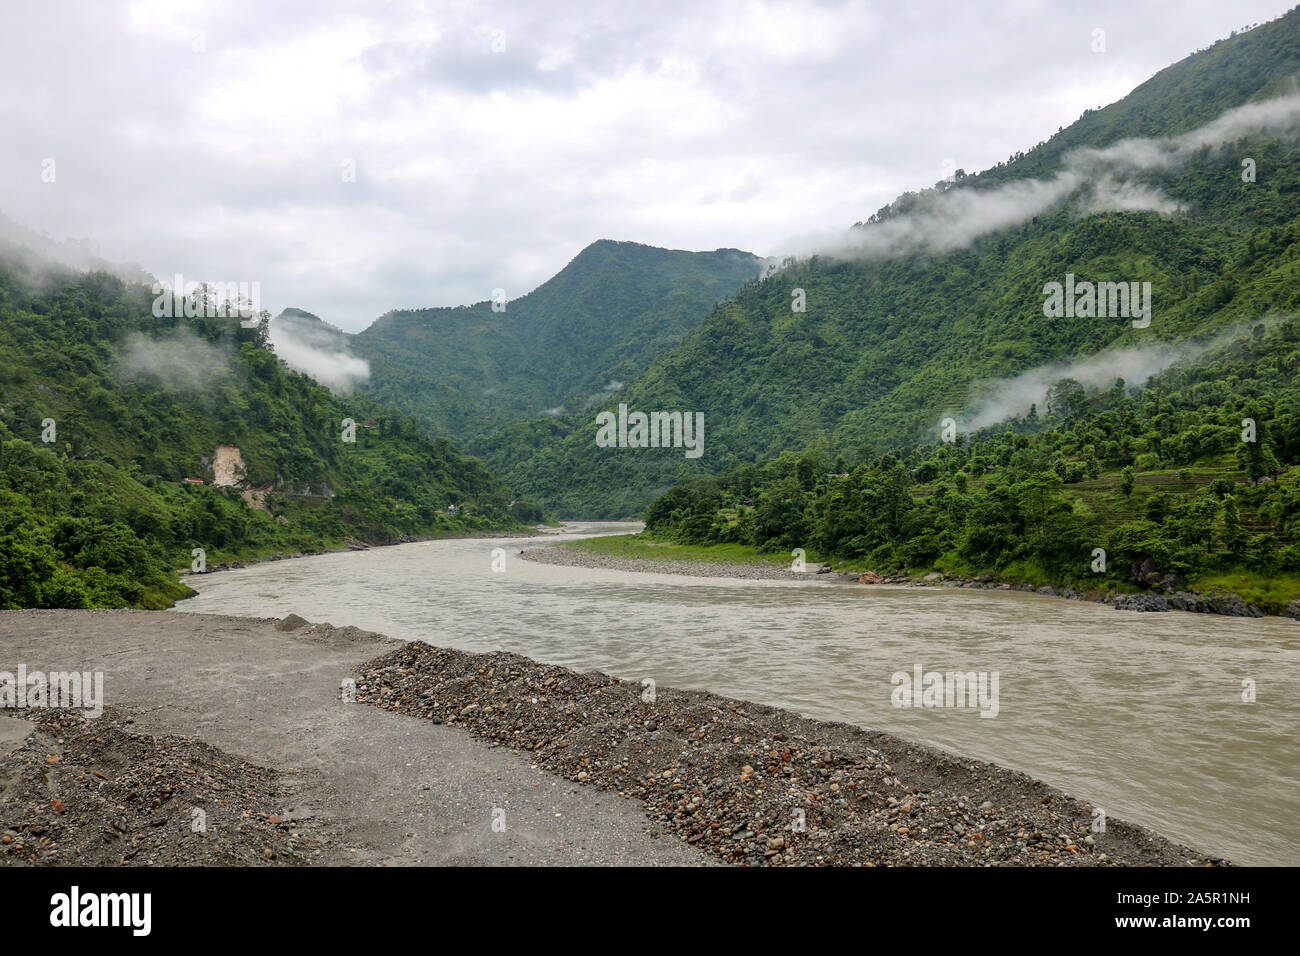 Mountains with forest in the clouds on the banks of the Seti Gandaki river in Nepal Stock Photo